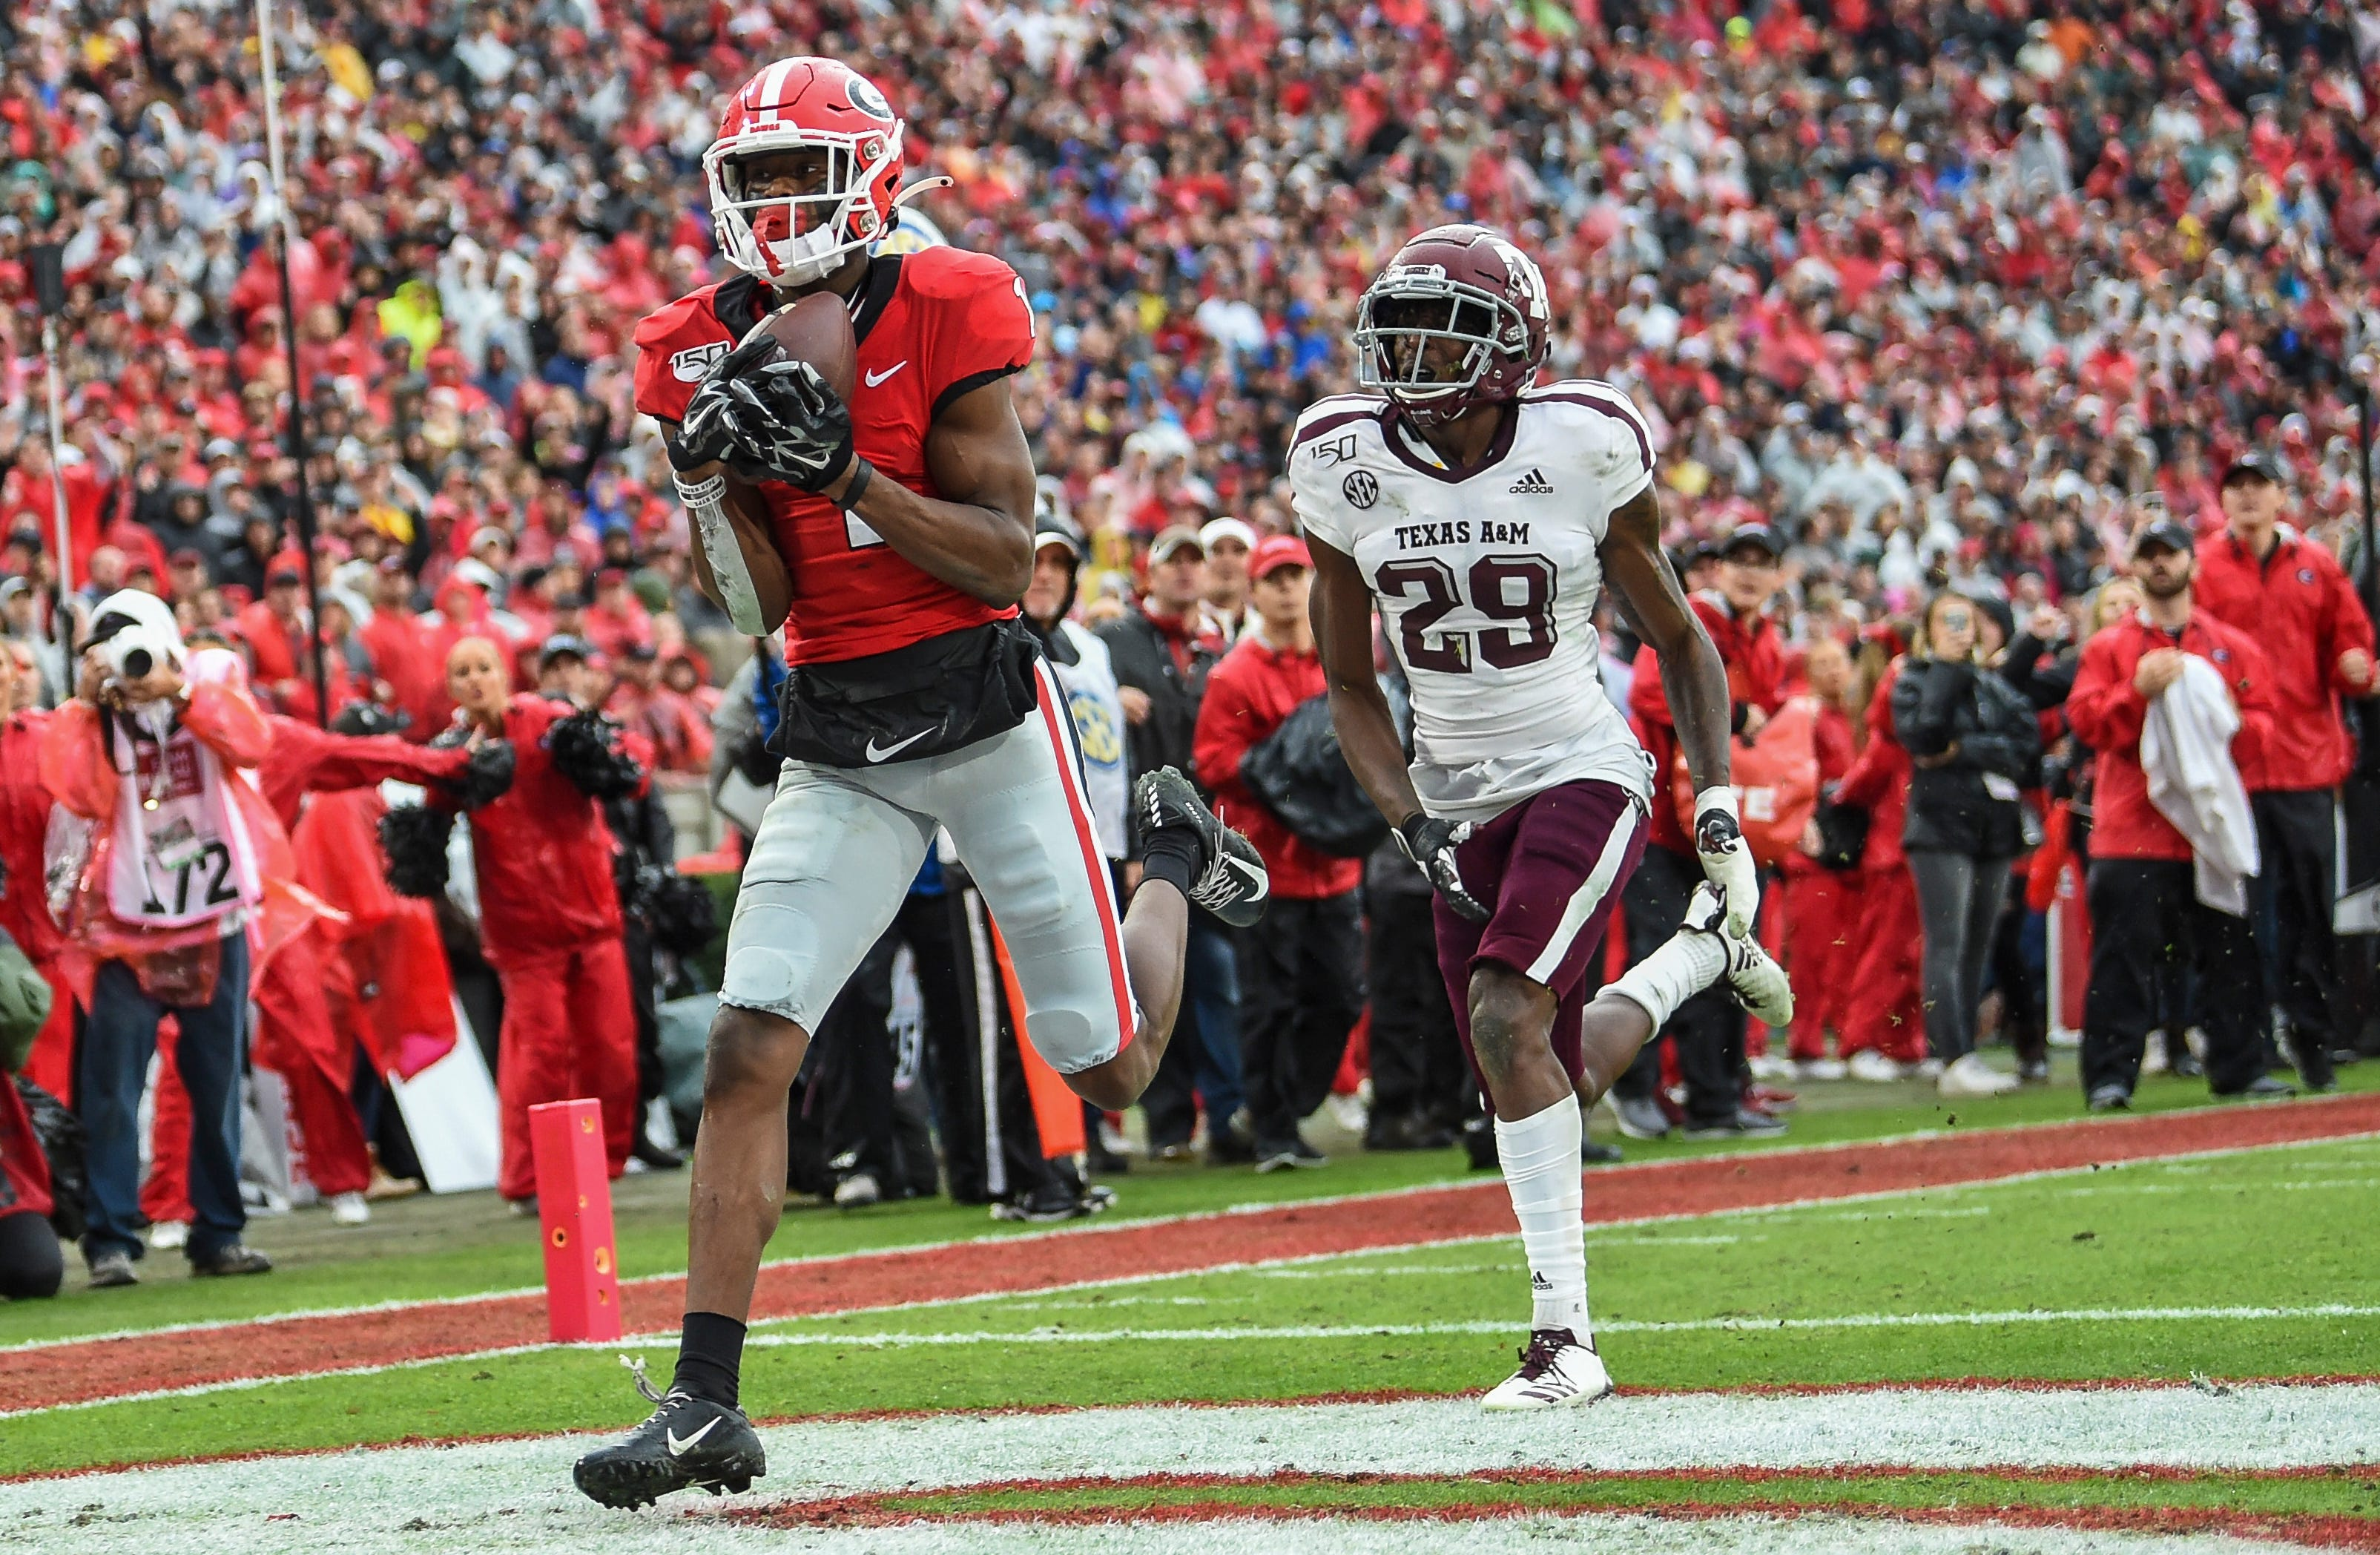 Georgia And Texas A&M Need To Play Each Other This Weekend